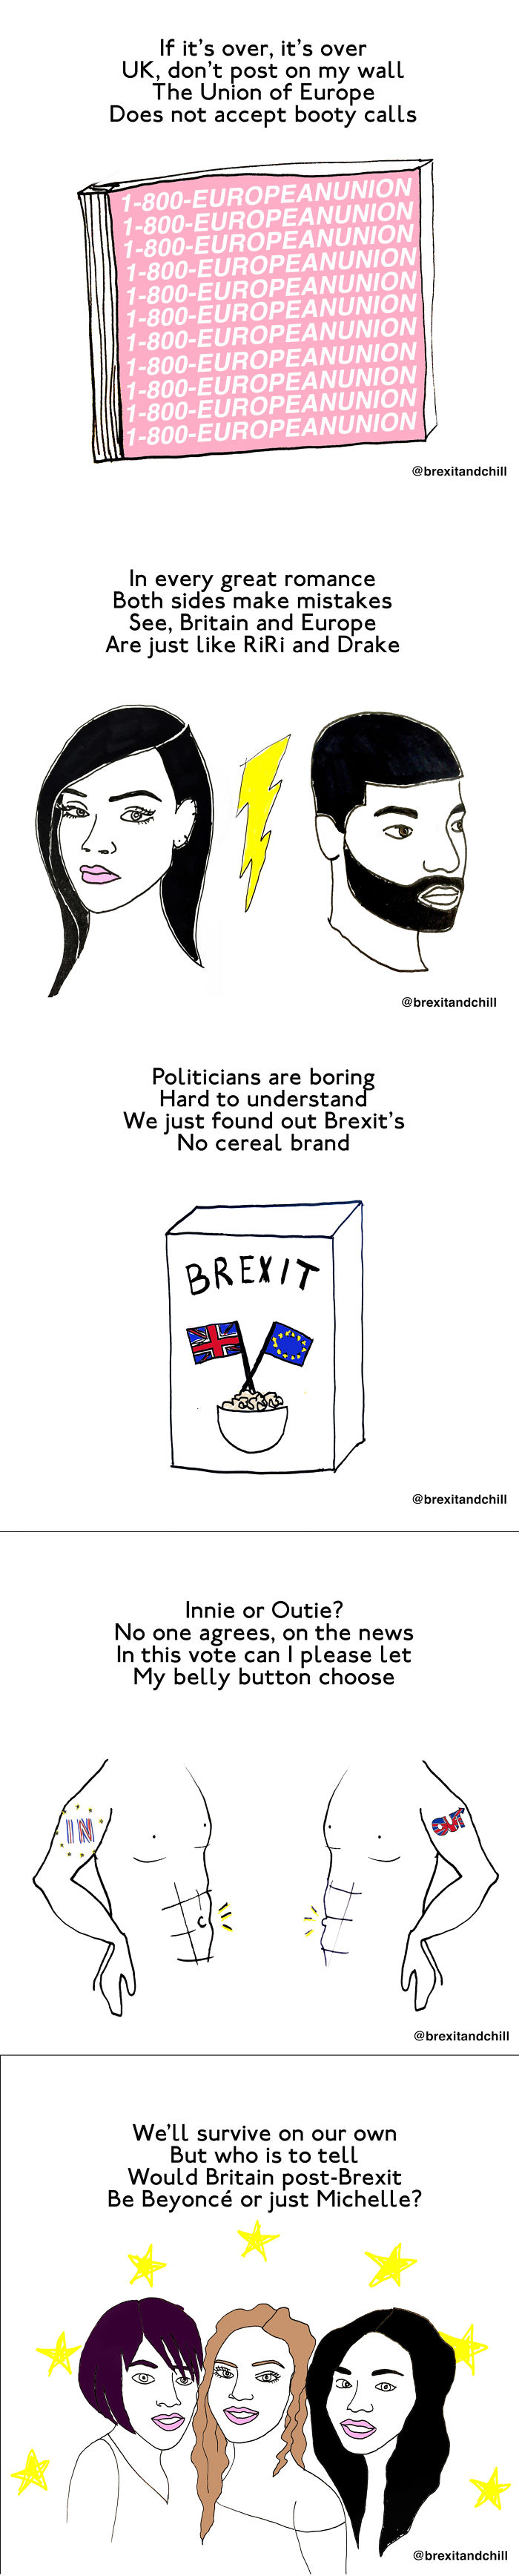 Should The Brits Just Brexit And Chill?